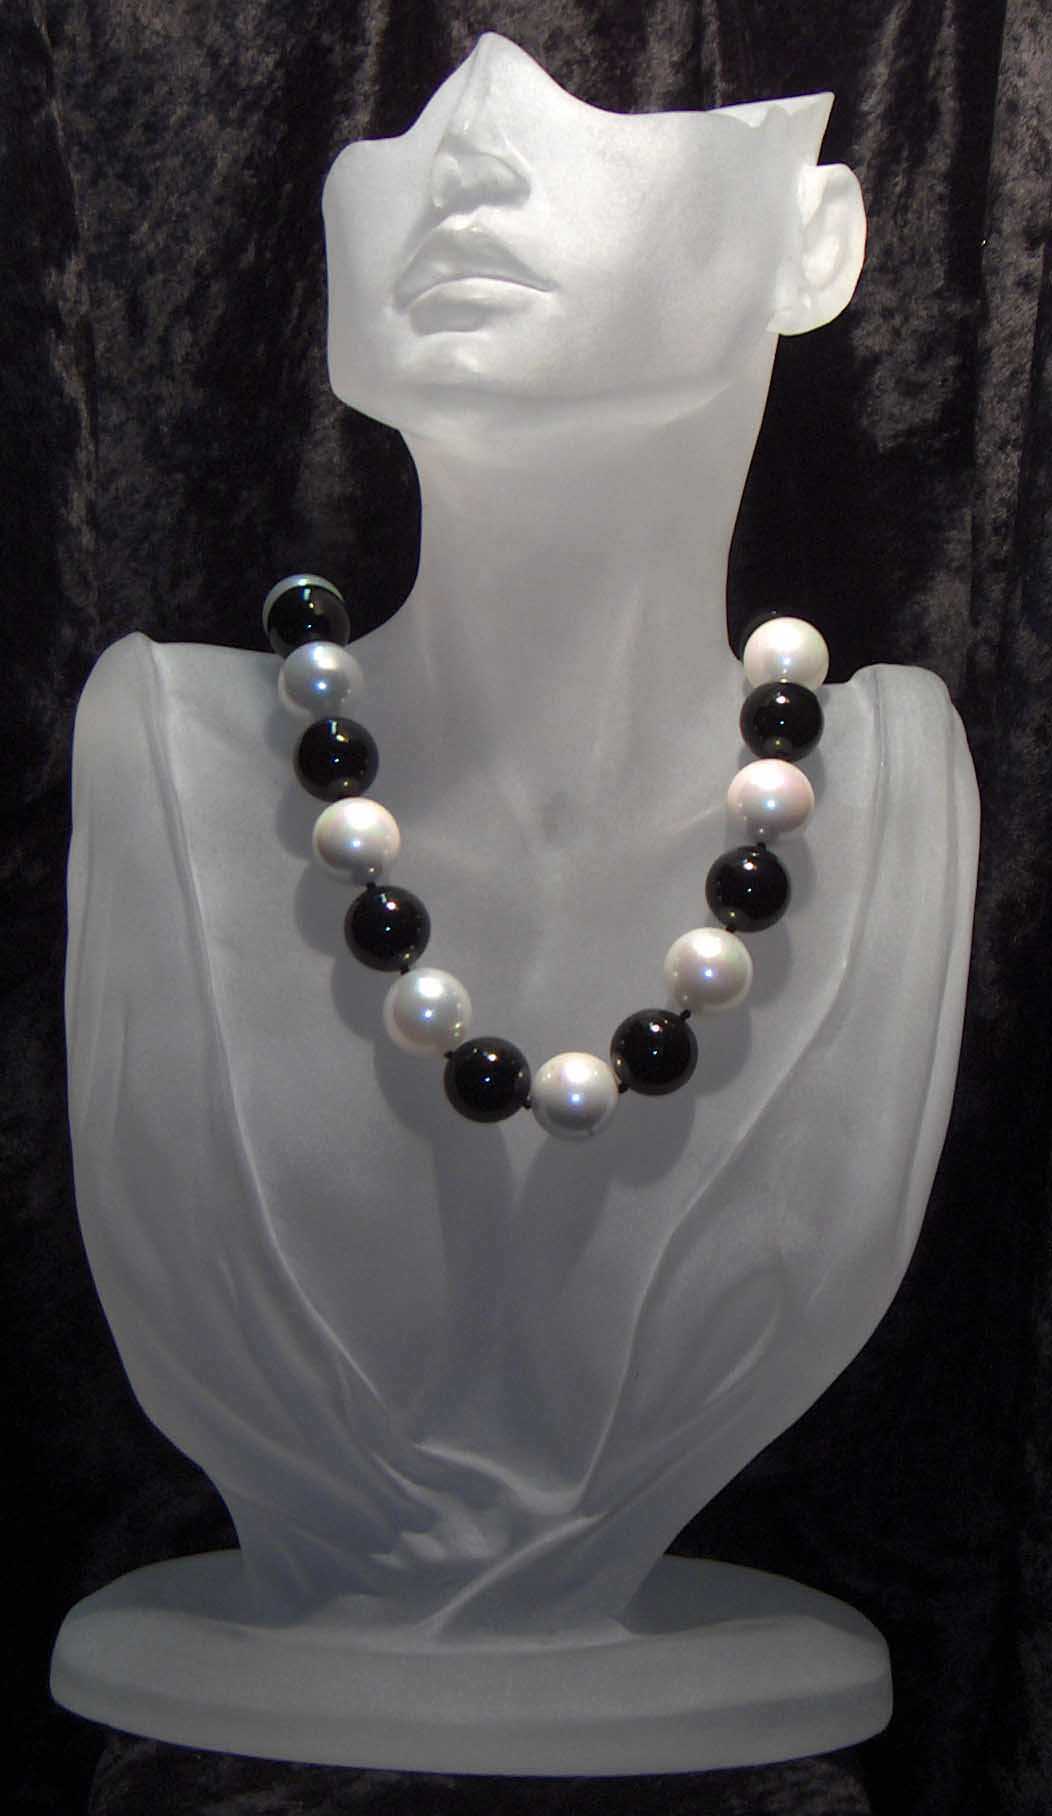 Black onyx and white mallorca pearl necklace